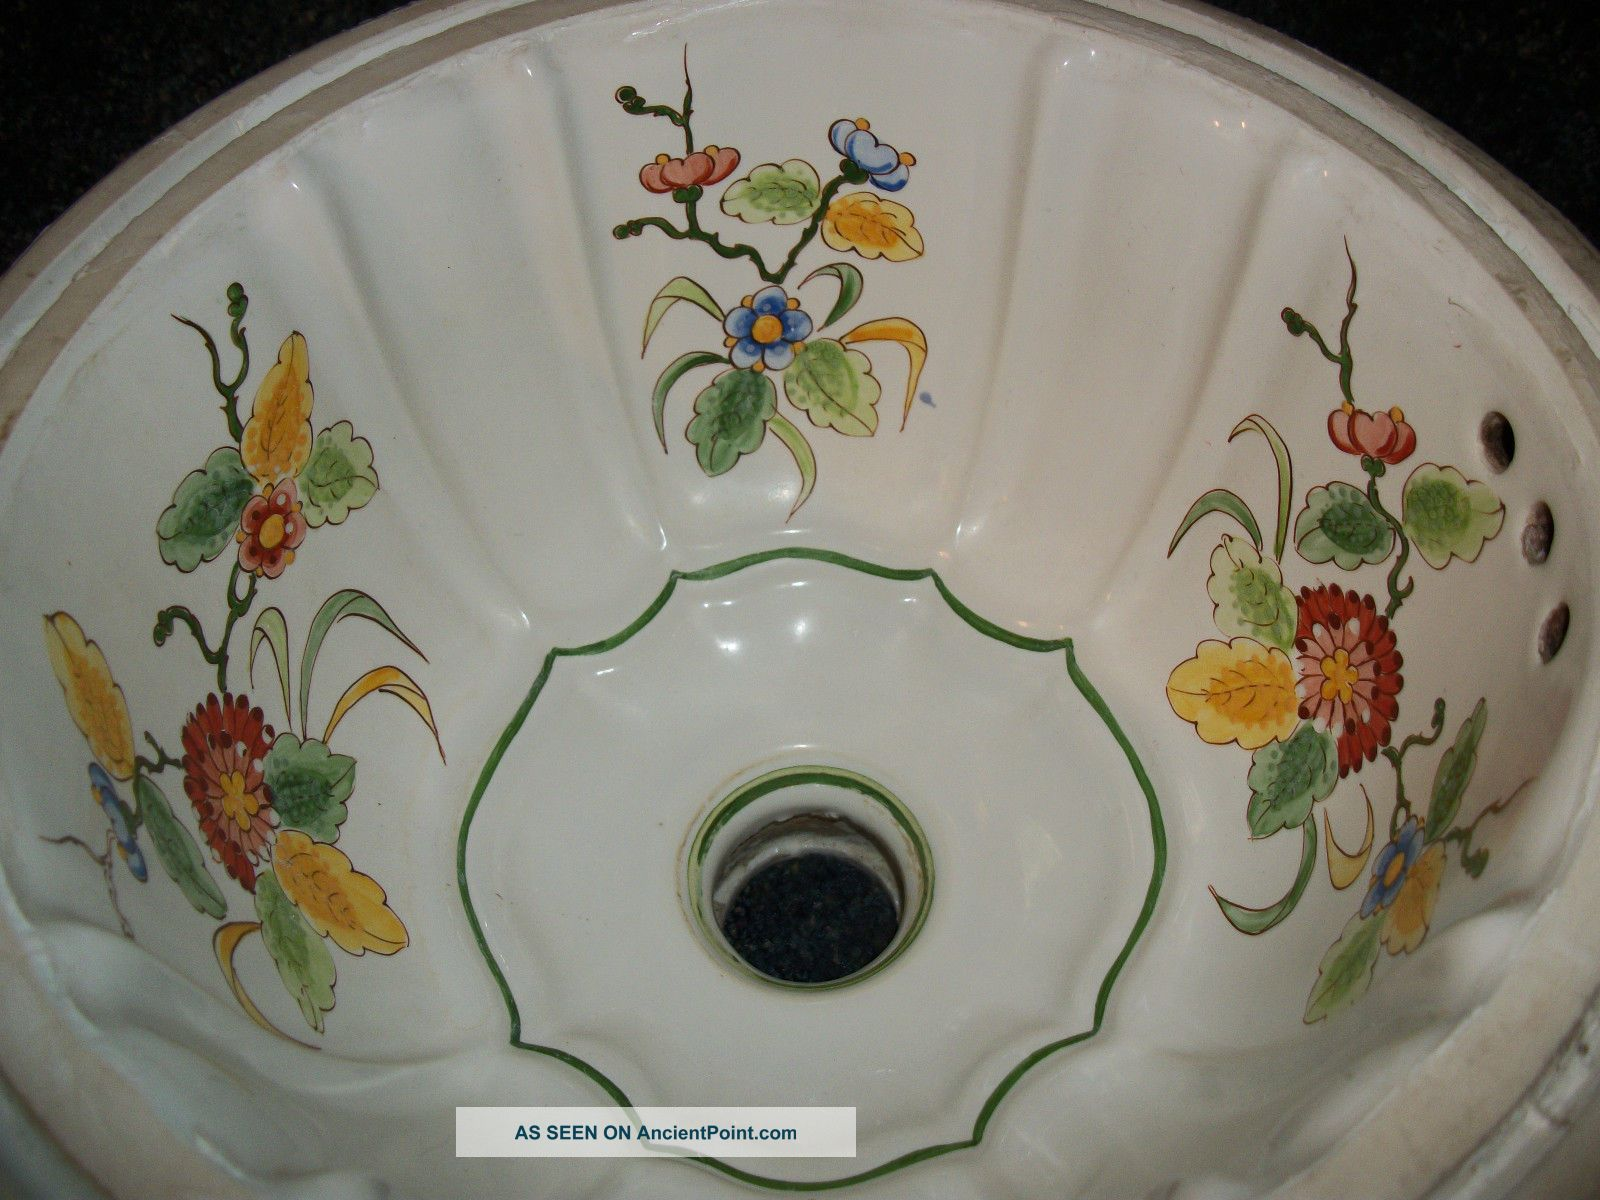 Hand Painted Sinks : ... Italian Porcelain Undermount Sink Hand Painted Flowers Plumbing photo